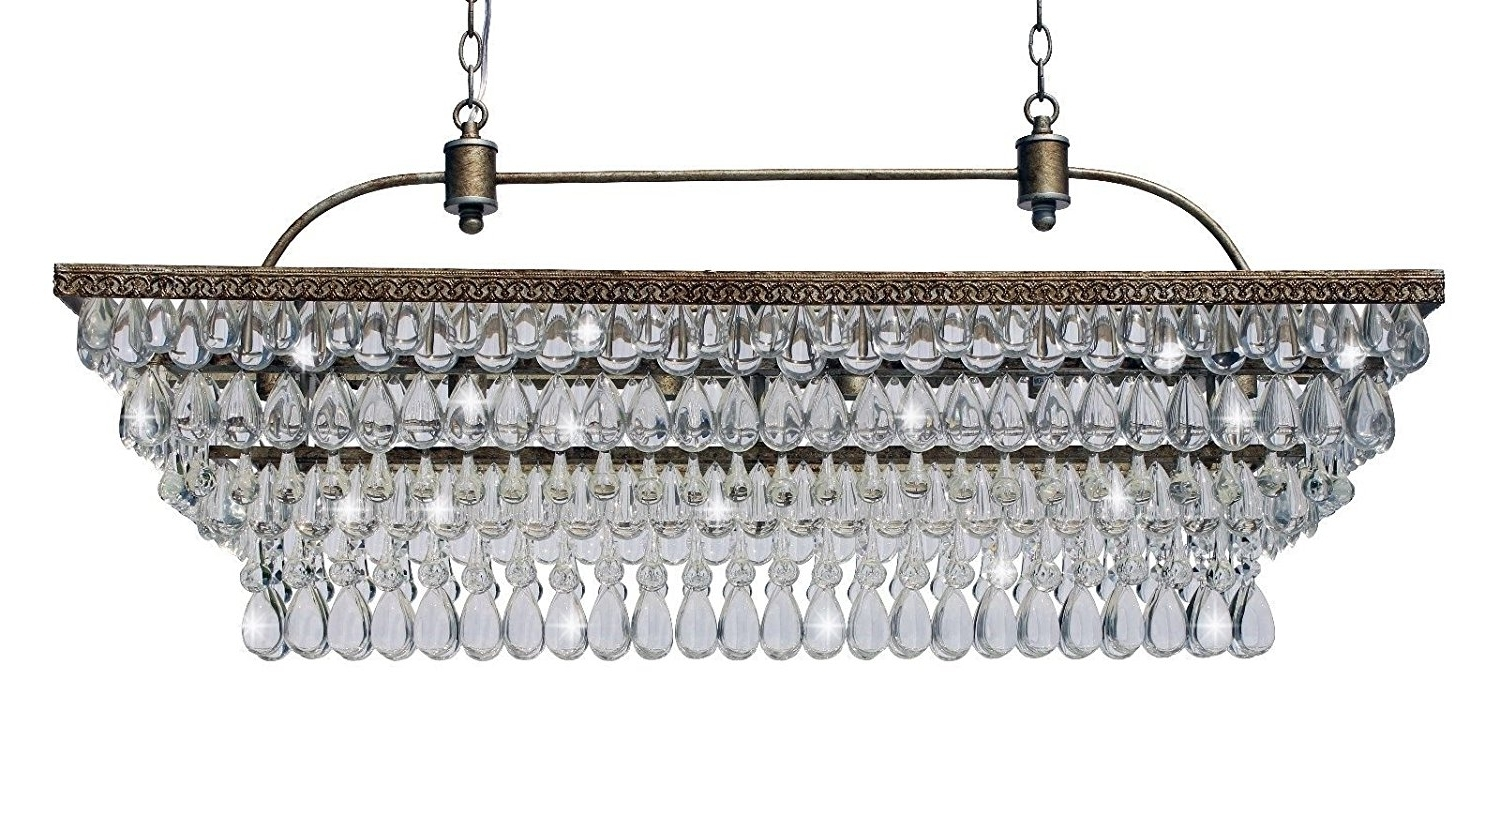 The Weston 40 Inch Rectangular Glass Drop Crystal Chandelier Pertaining To Fashionable Glass Droplet Chandelier (View 15 of 15)